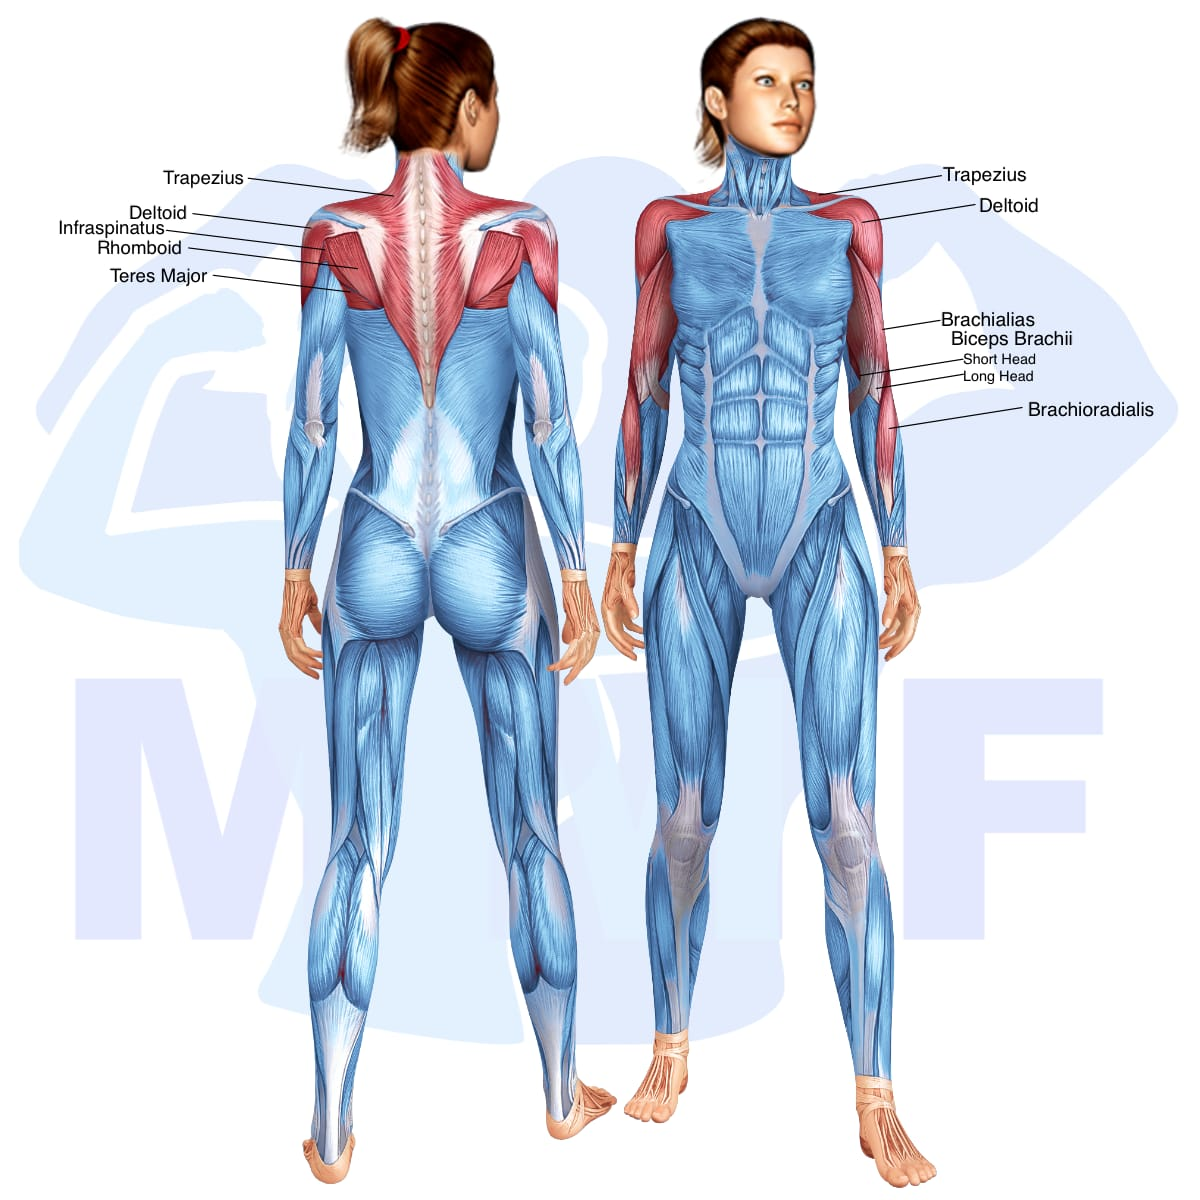 Skeletal muscle systems for a muscular woman, with muscles highlighted in red that are use during resistance band bent over rows.